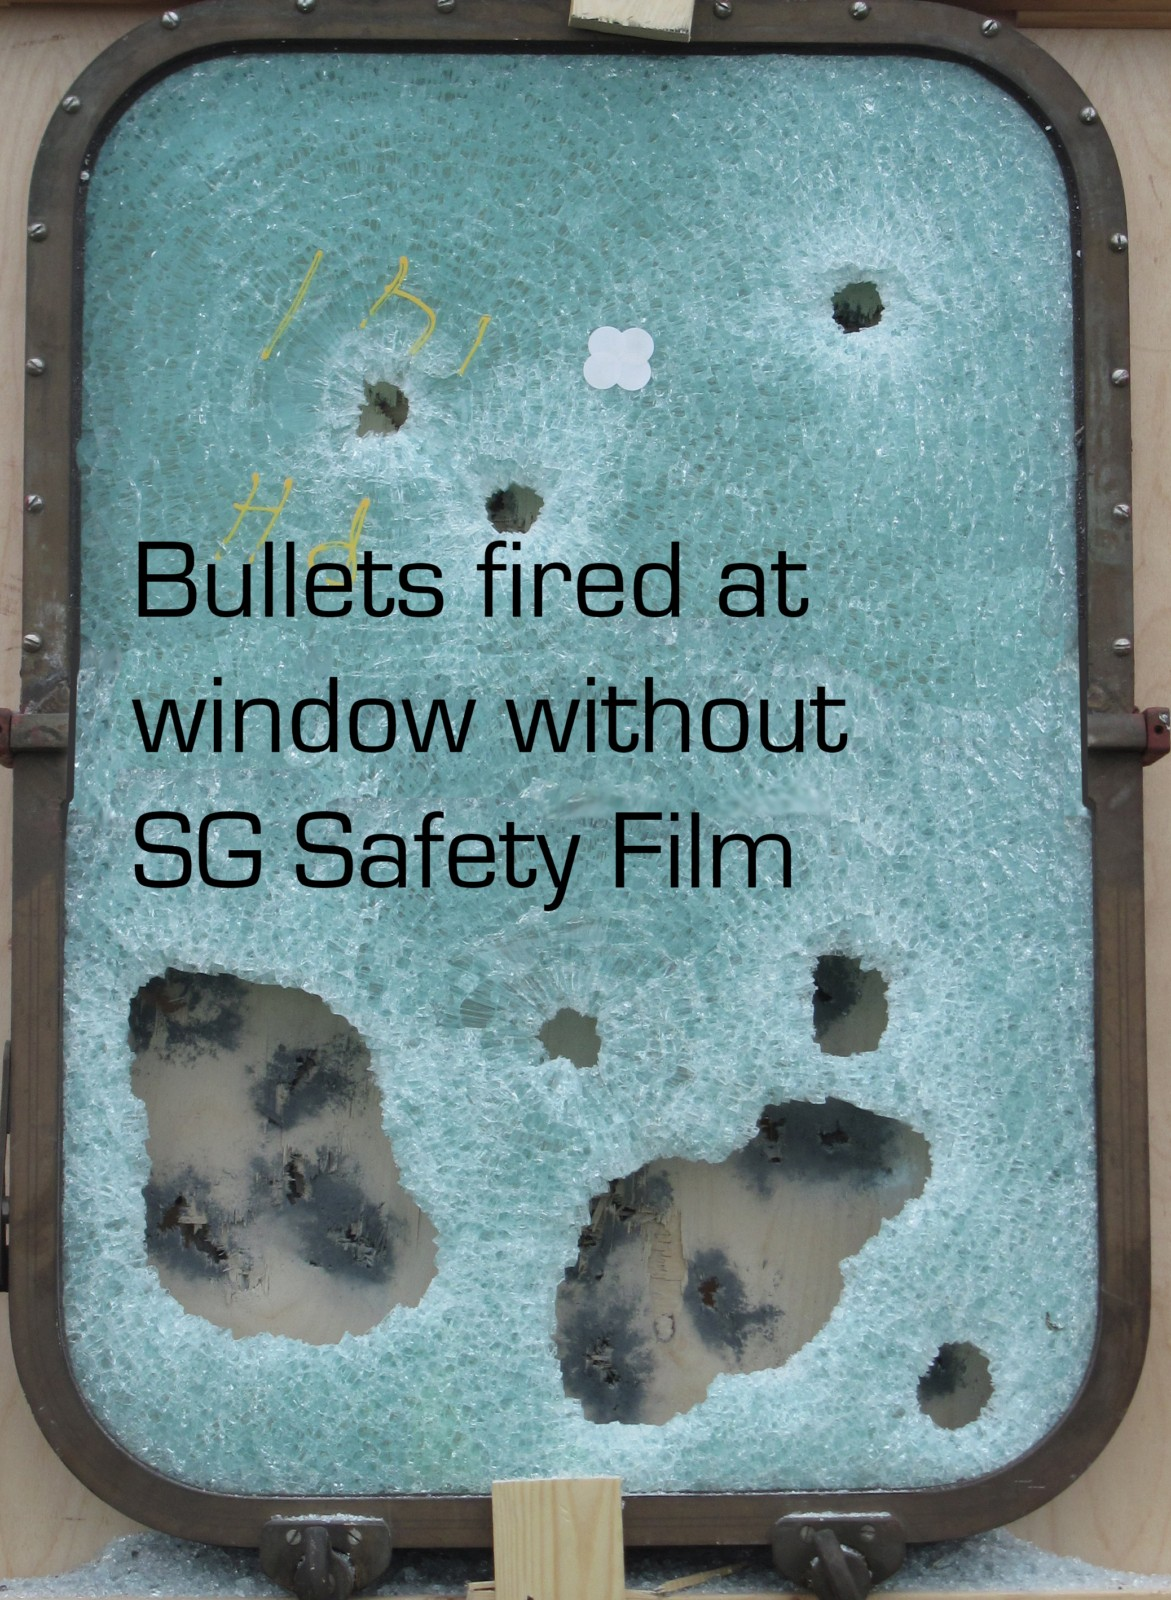 Window without SG Safety Film